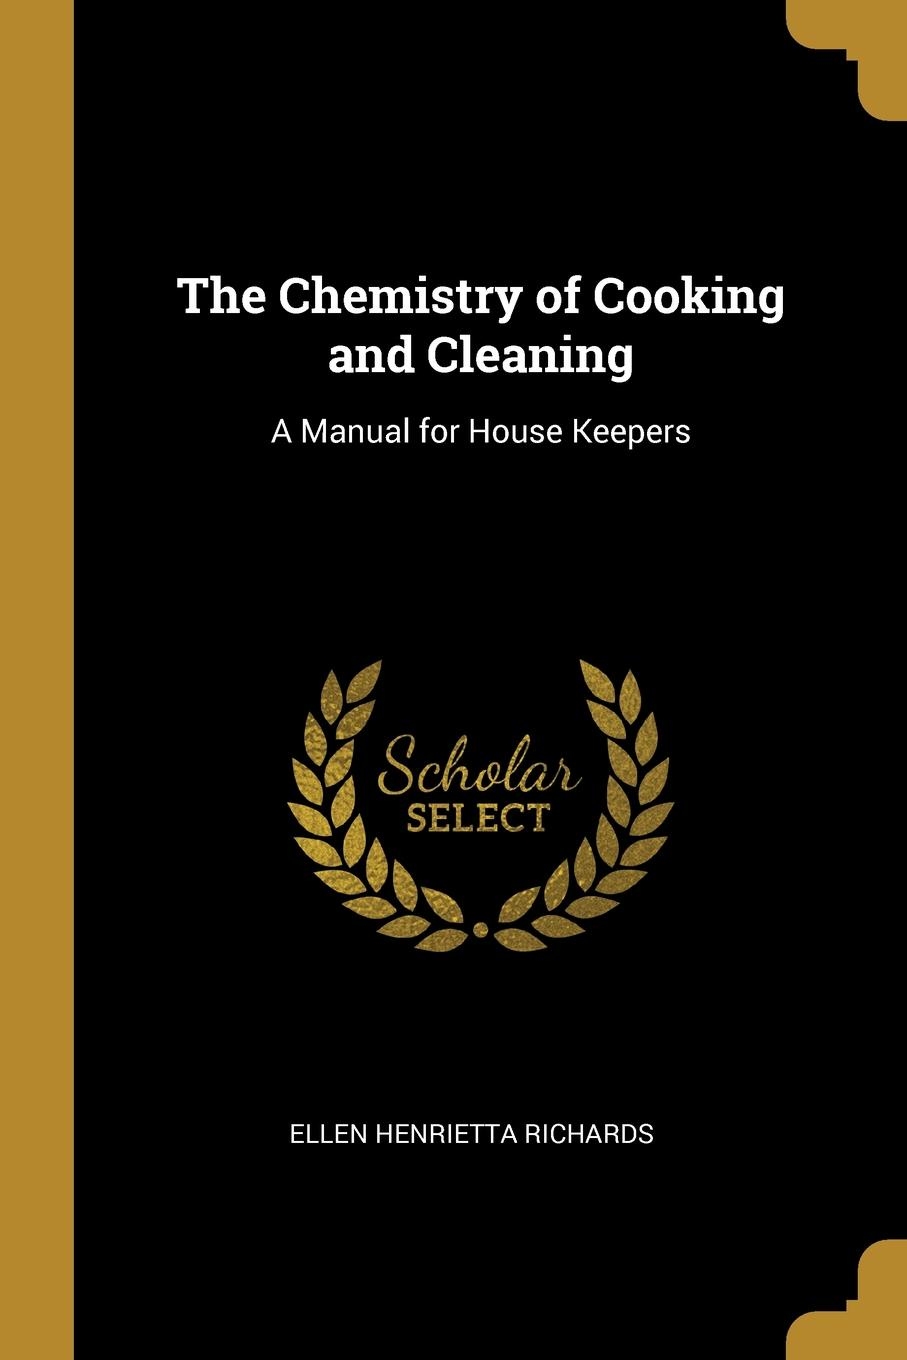 Ellen Henrietta Richards. The Chemistry of Cooking and Cleaning. A Manual for House Keepers